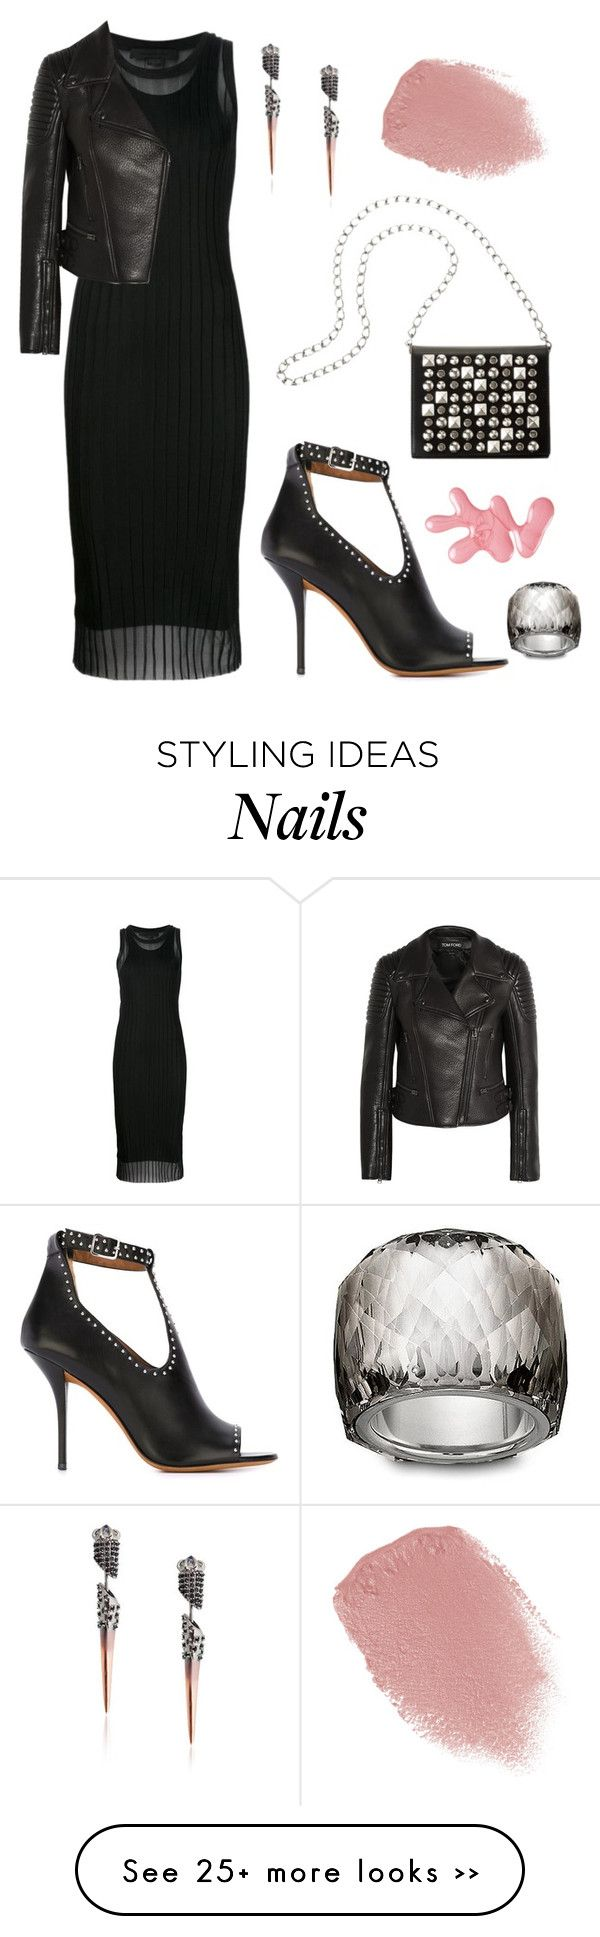 """NYFW All Black"" by dominosfalldown on Polyvore featuring Alexander Wang, Givenchy, Tom Ford, Swarovski, Lipstick Queen, Katie Rowland and nyfwafterparty"